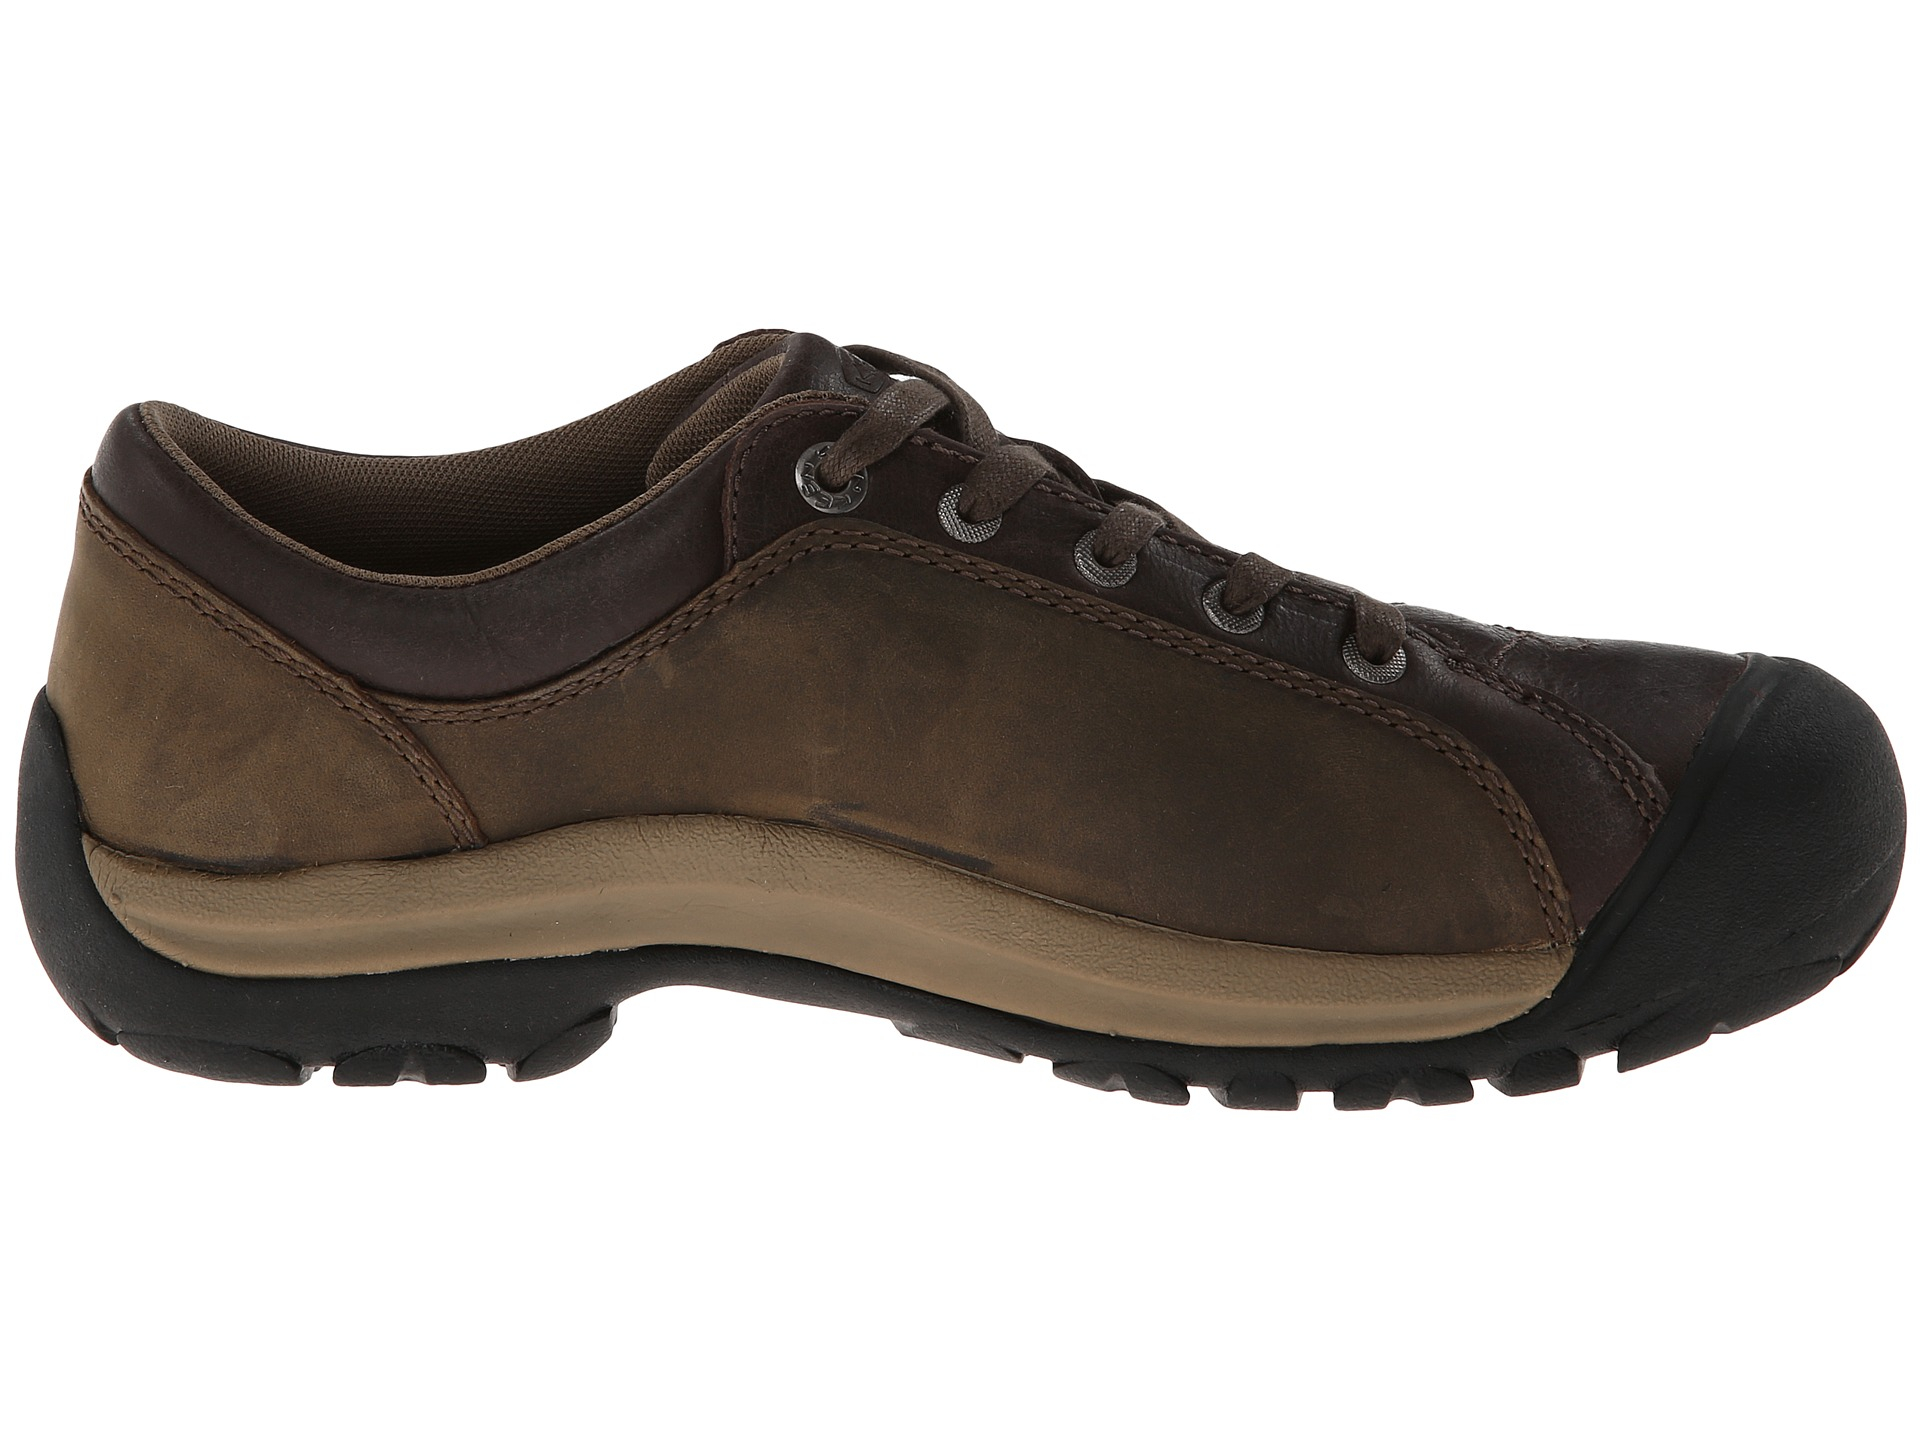 Keen Briggs Shoes